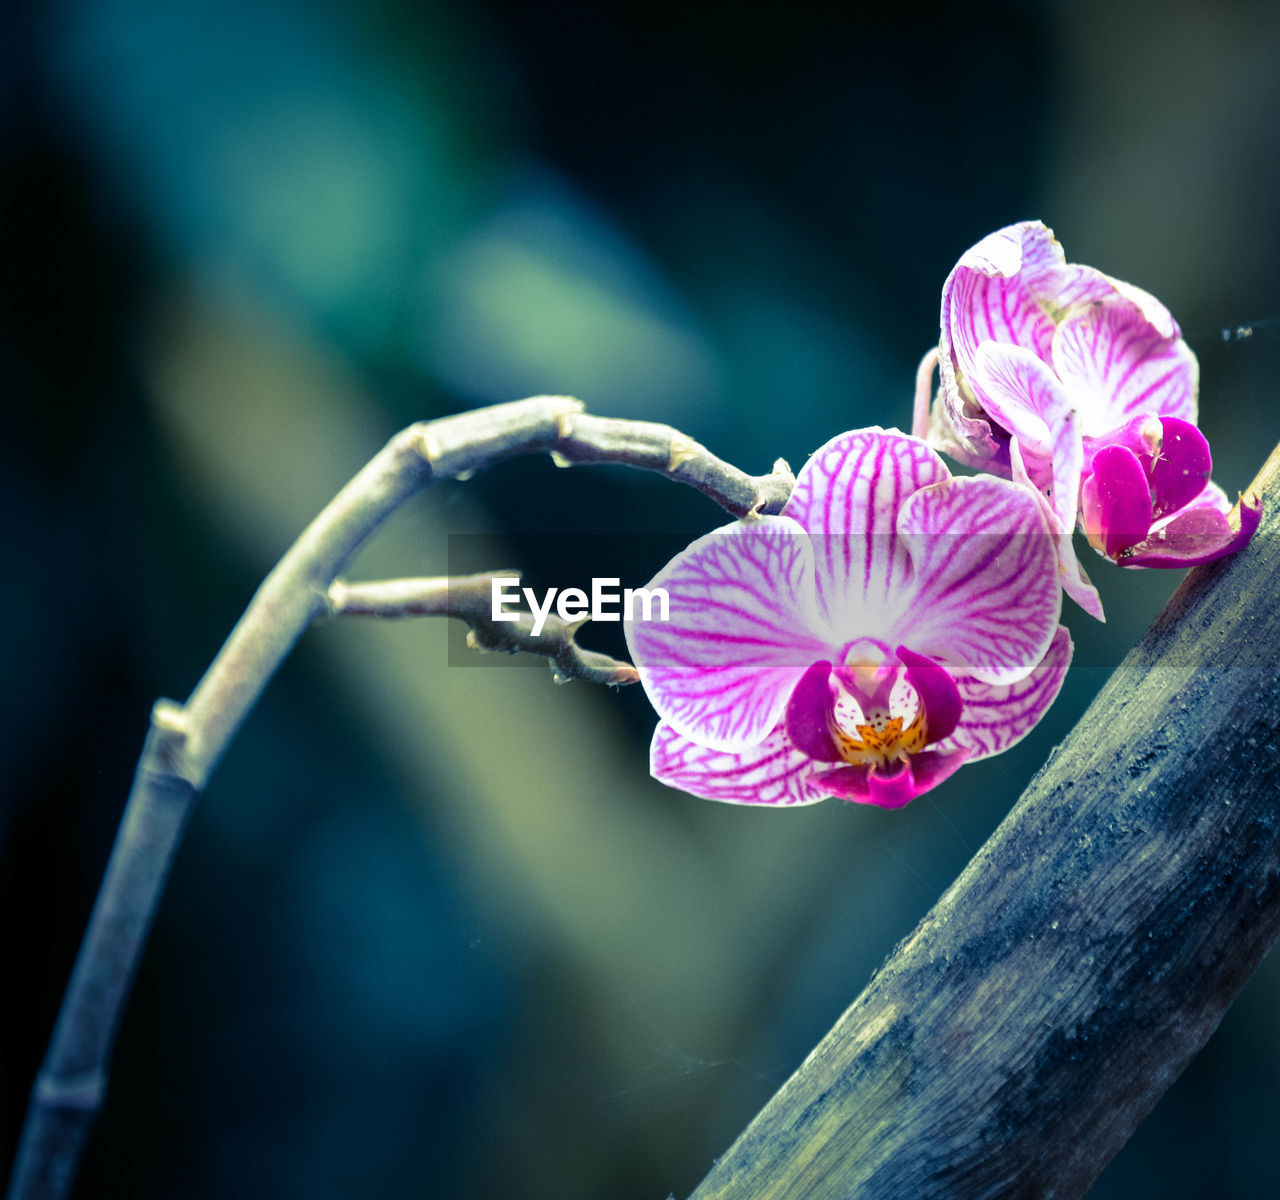 flower, fragility, petal, nature, beauty in nature, growth, flower head, pink color, focus on foreground, close-up, no people, freshness, day, plant, outdoors, blooming